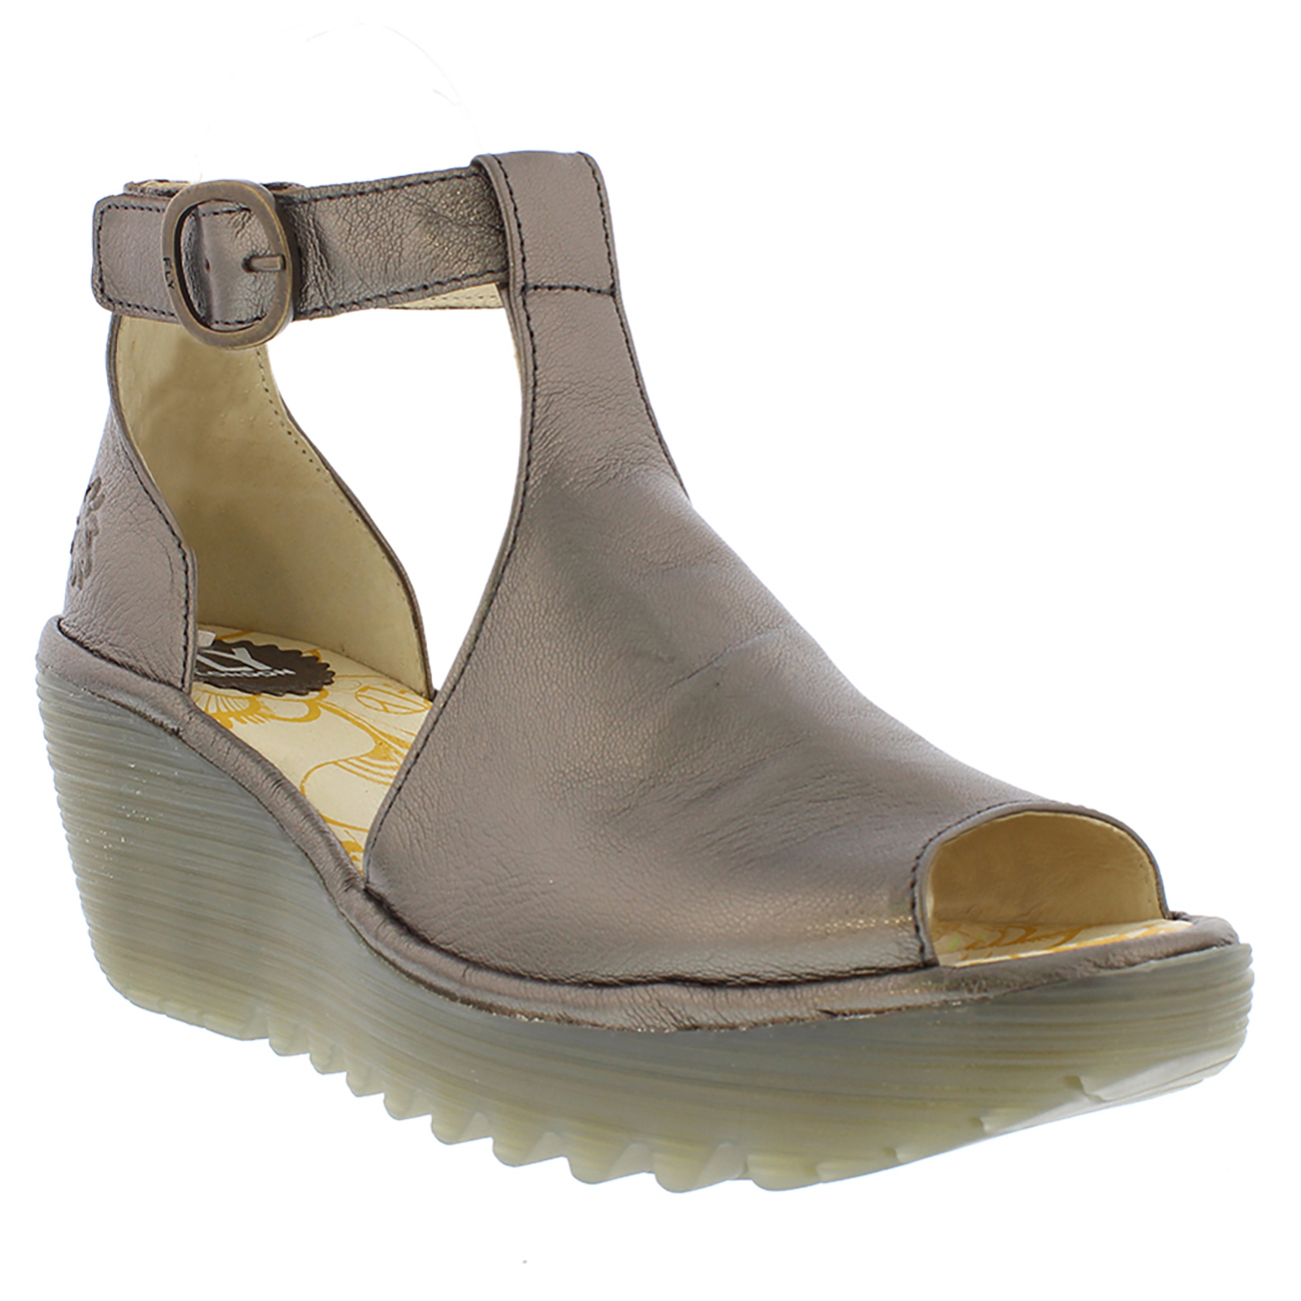 d14705ce1d8 Fly Shoes - Women s Fly London Shoes   Boots - Ladies Sandals - Shubox